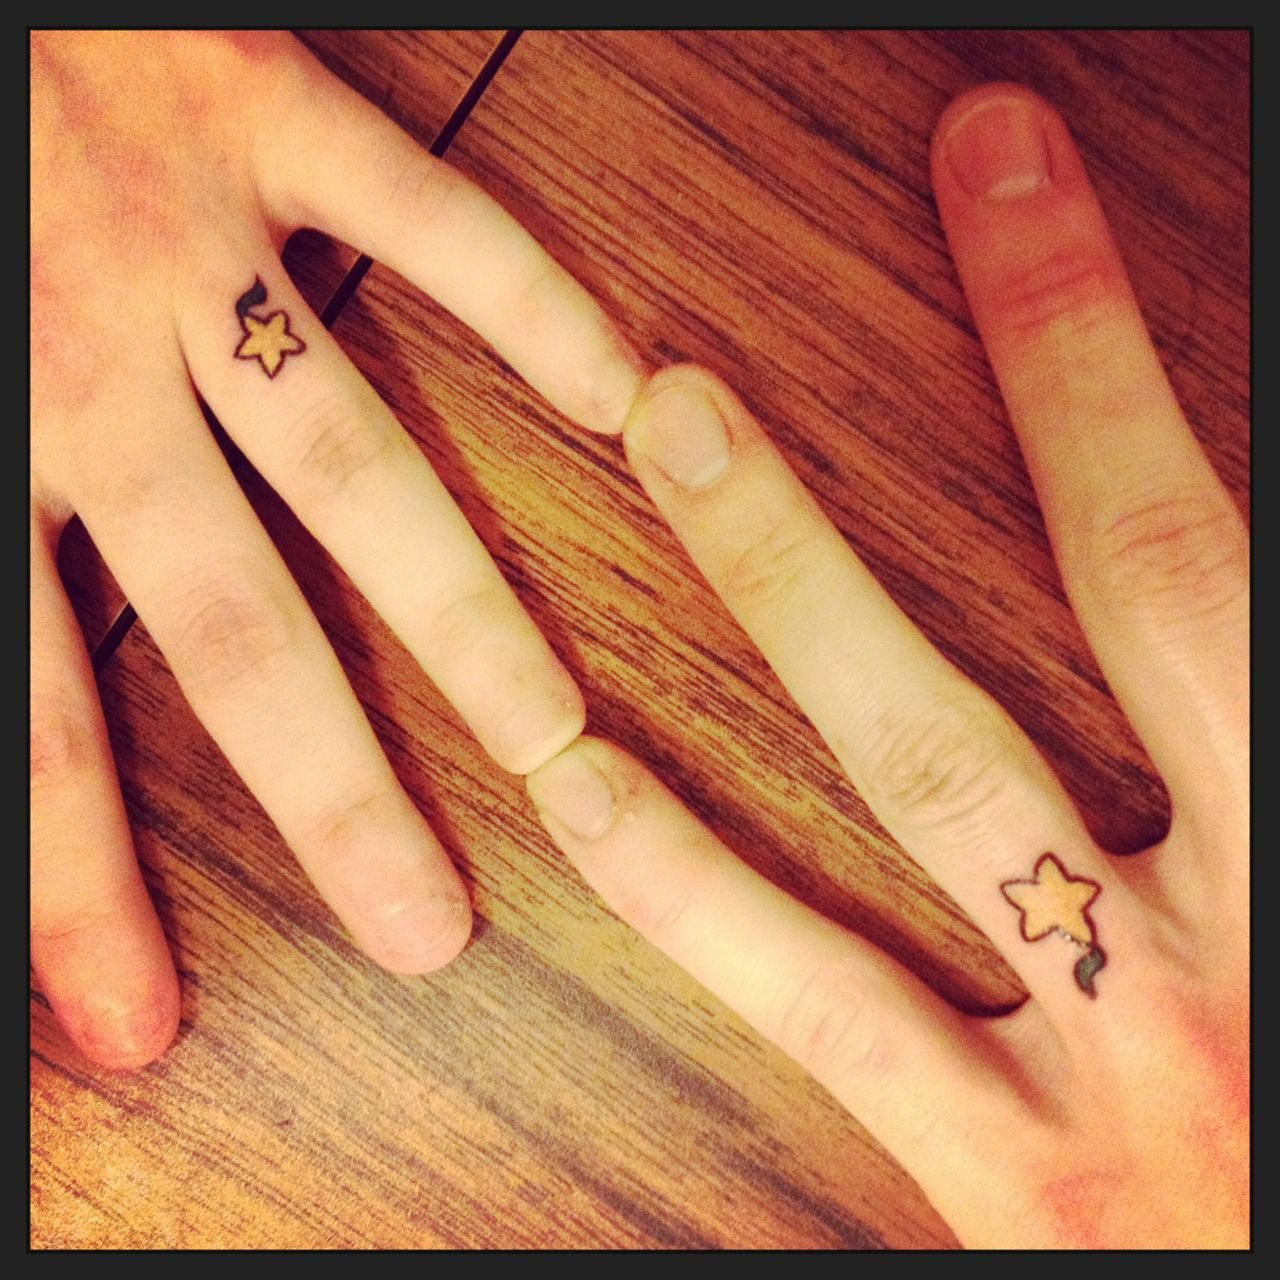 My fiancé and I got Paopu Fruit engagement ring tattoos ...